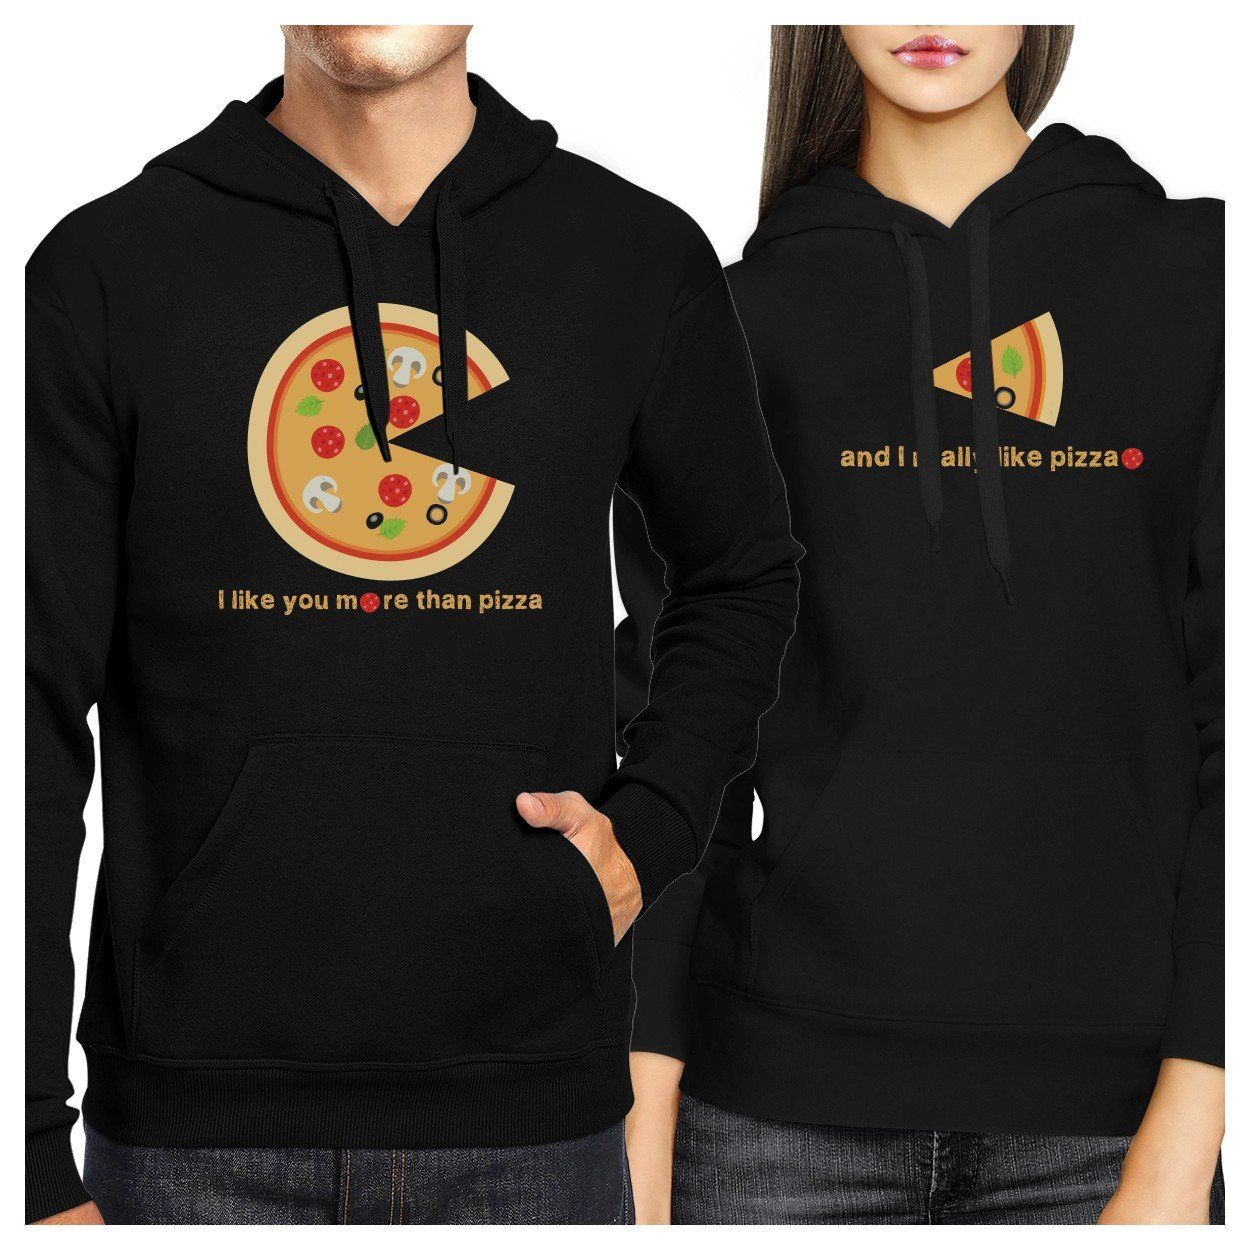 e86cfe3a78 I Like You More Than Pizza Couple Hoodies Valentines Day Gift Idea ...